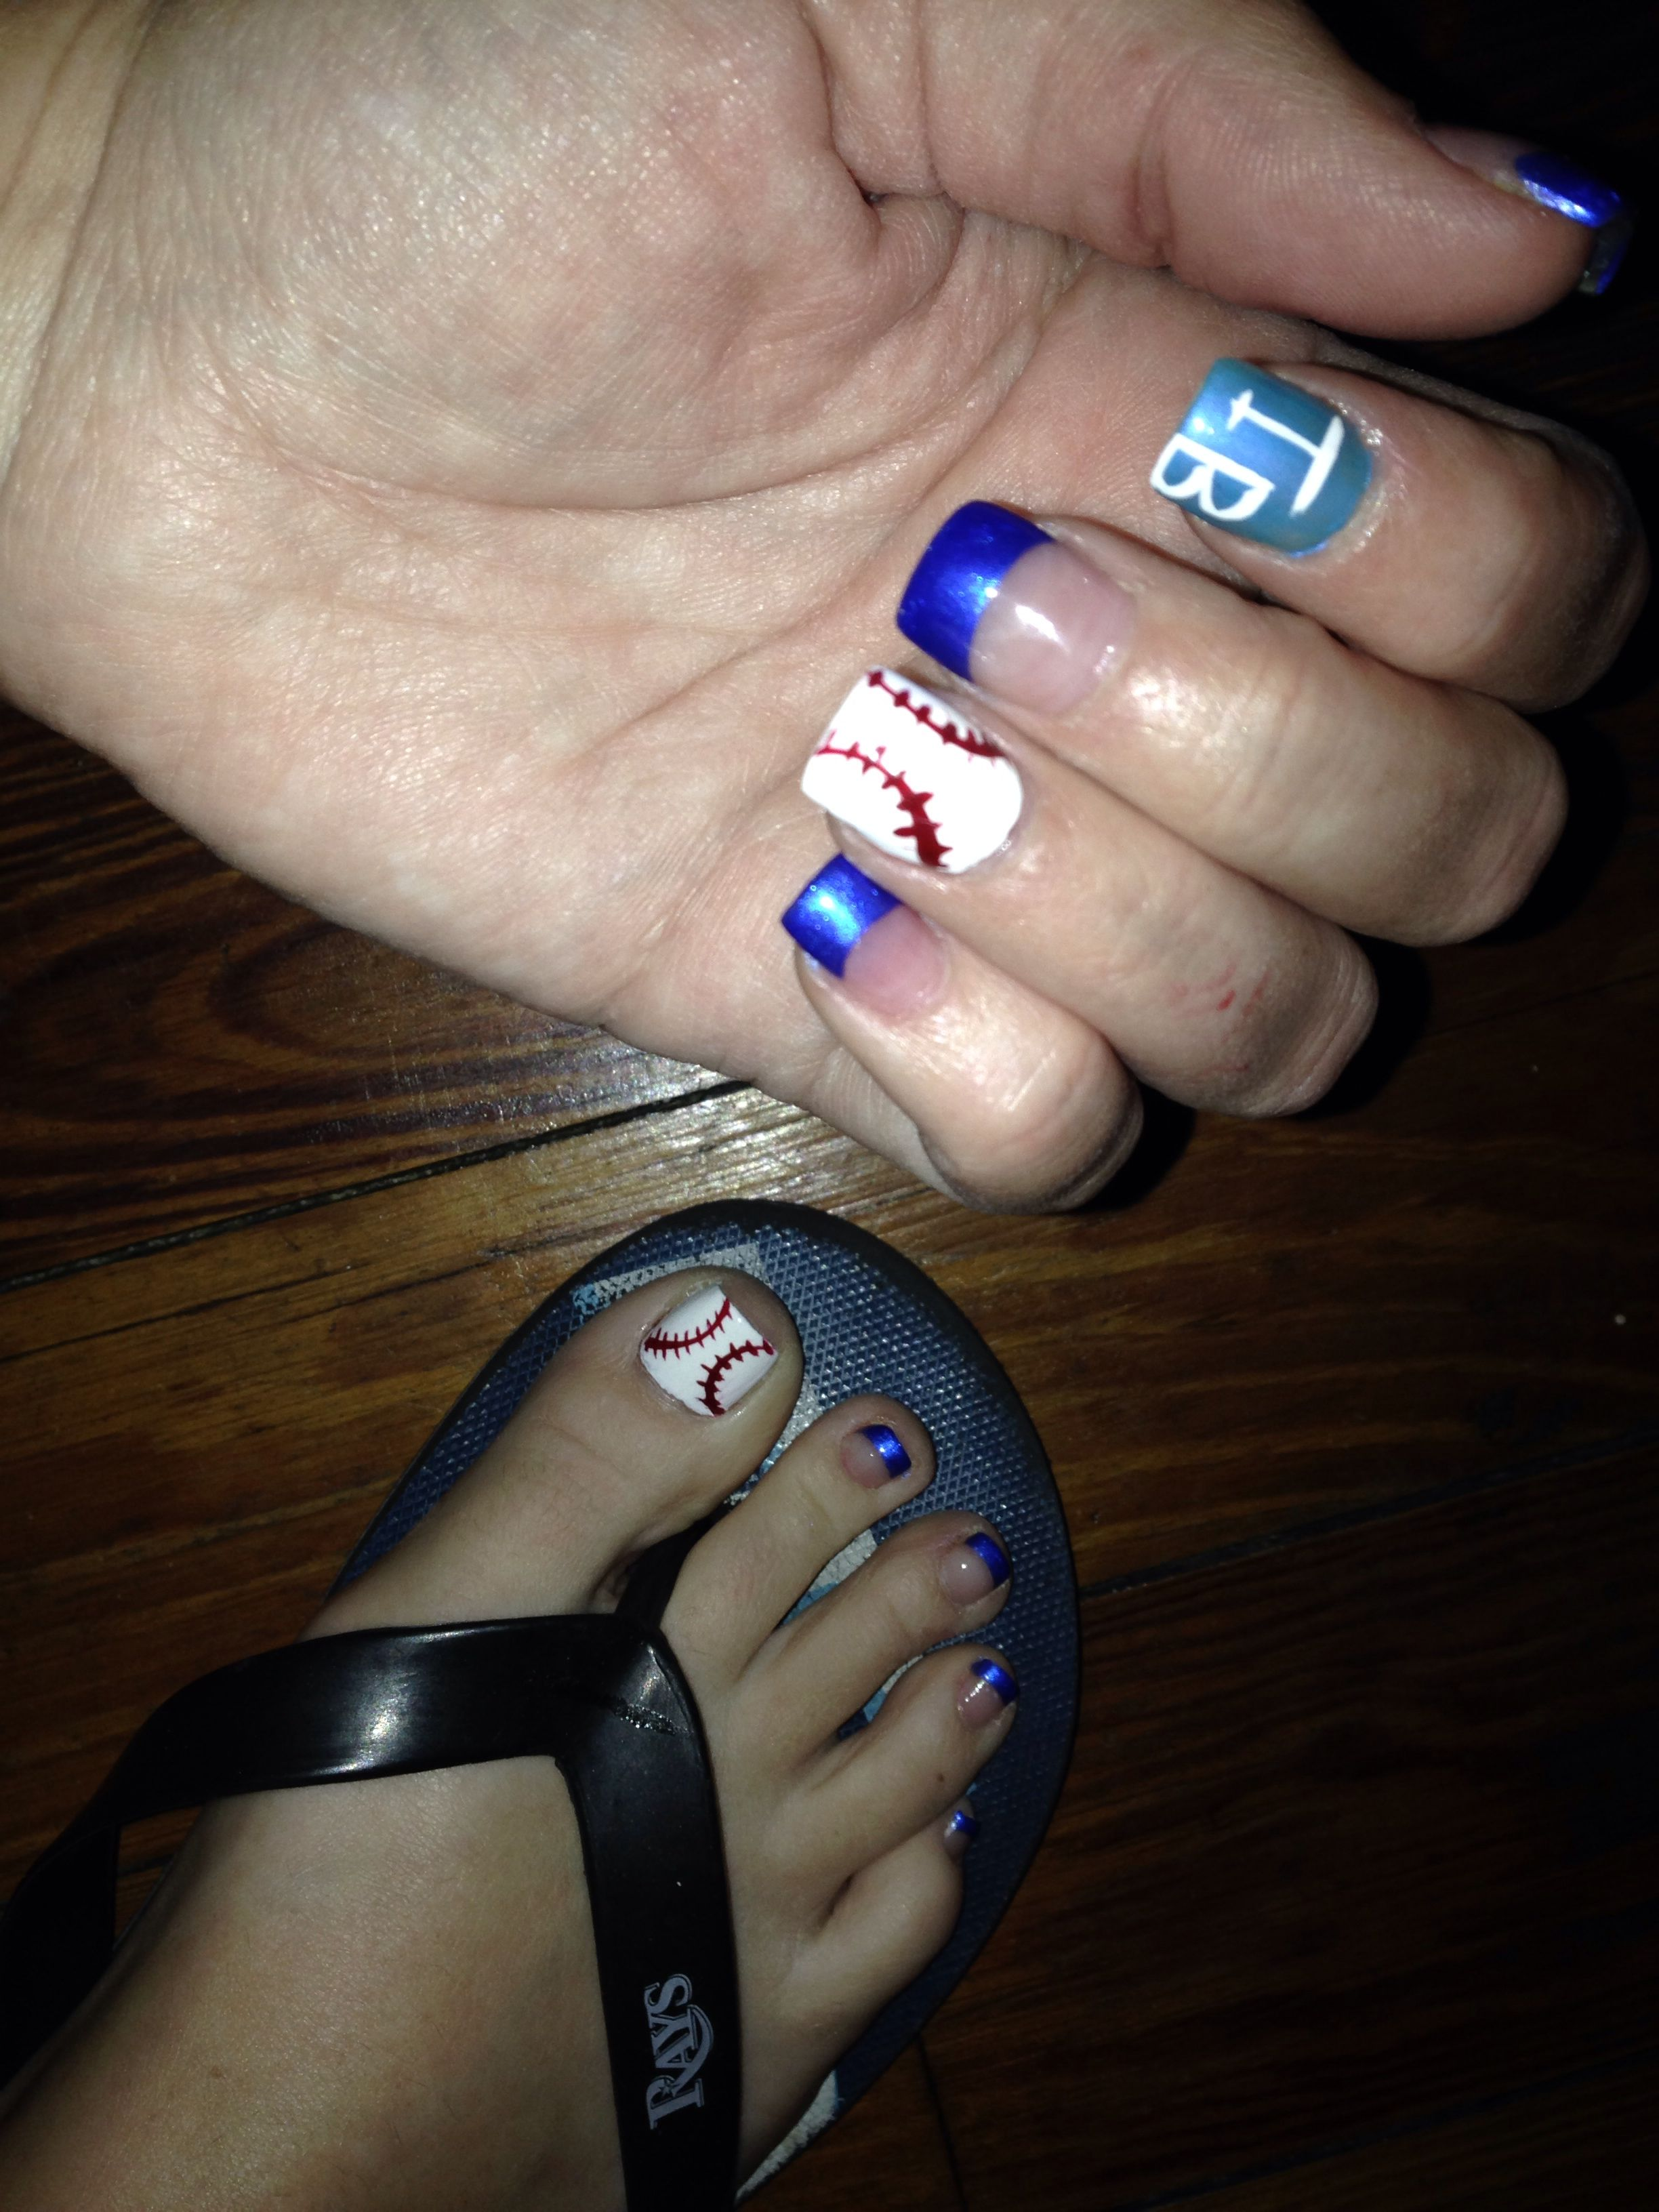 Tampa Bay Rays Nails Nail Art Team Spirit